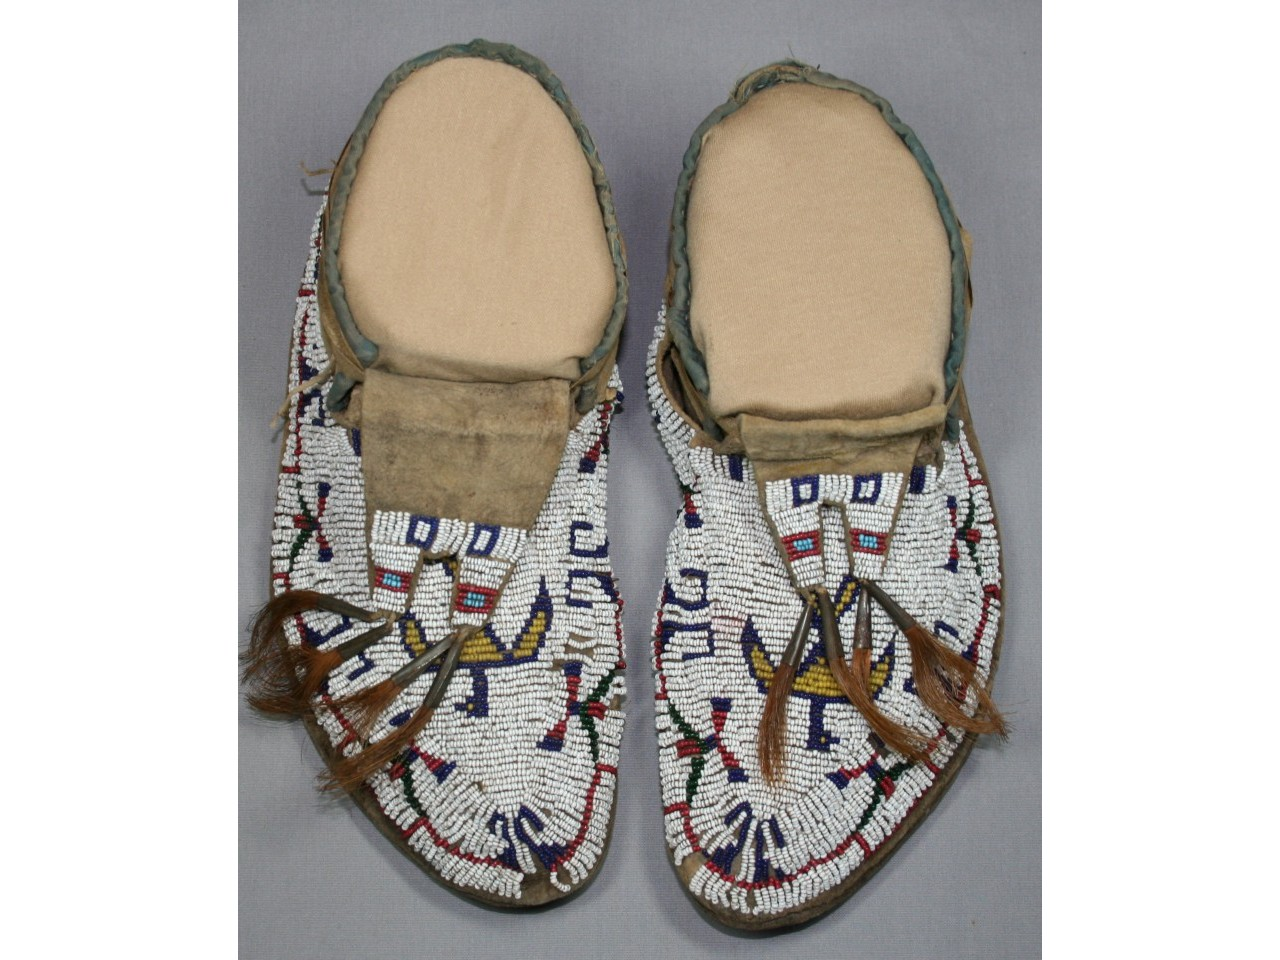 Iroquois beaded leather moccasins after conservation preservation treatment and stabilization repair and display for museum collection by spicer Art Conservation, experts in the conservation of Native American object, paper, textile artifacts